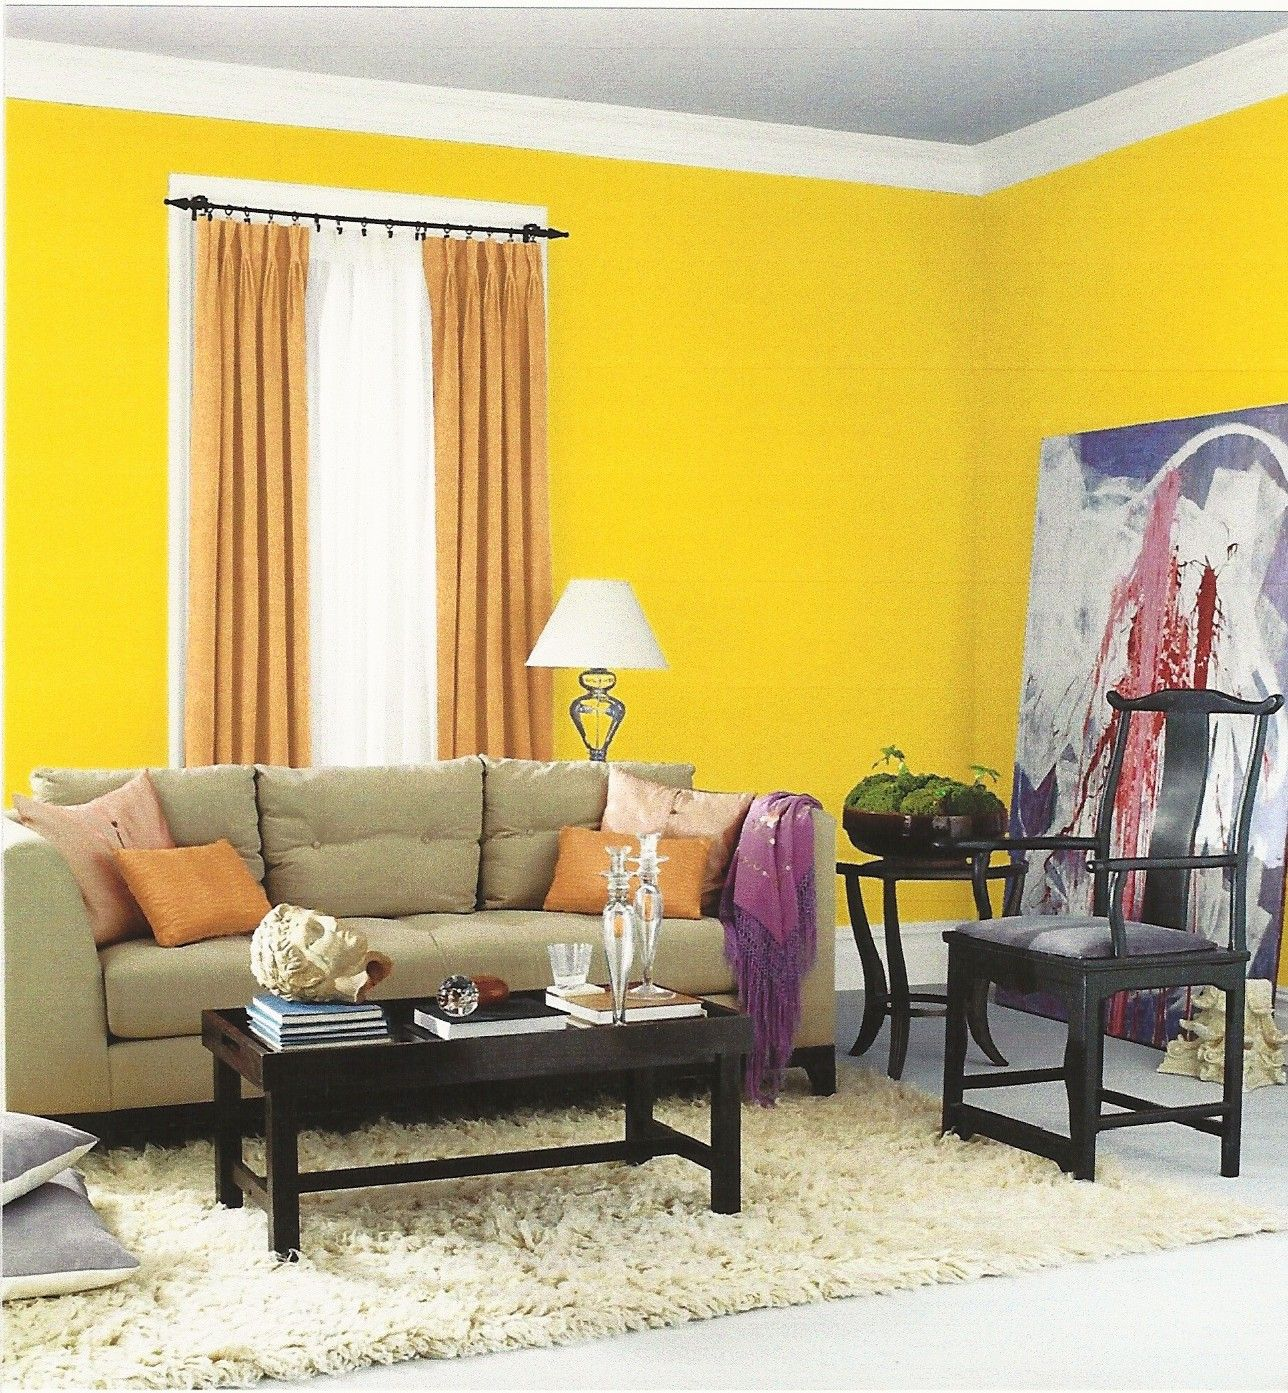 Interior Designs, Beautiful Small Space Yellow Paint Color For ...